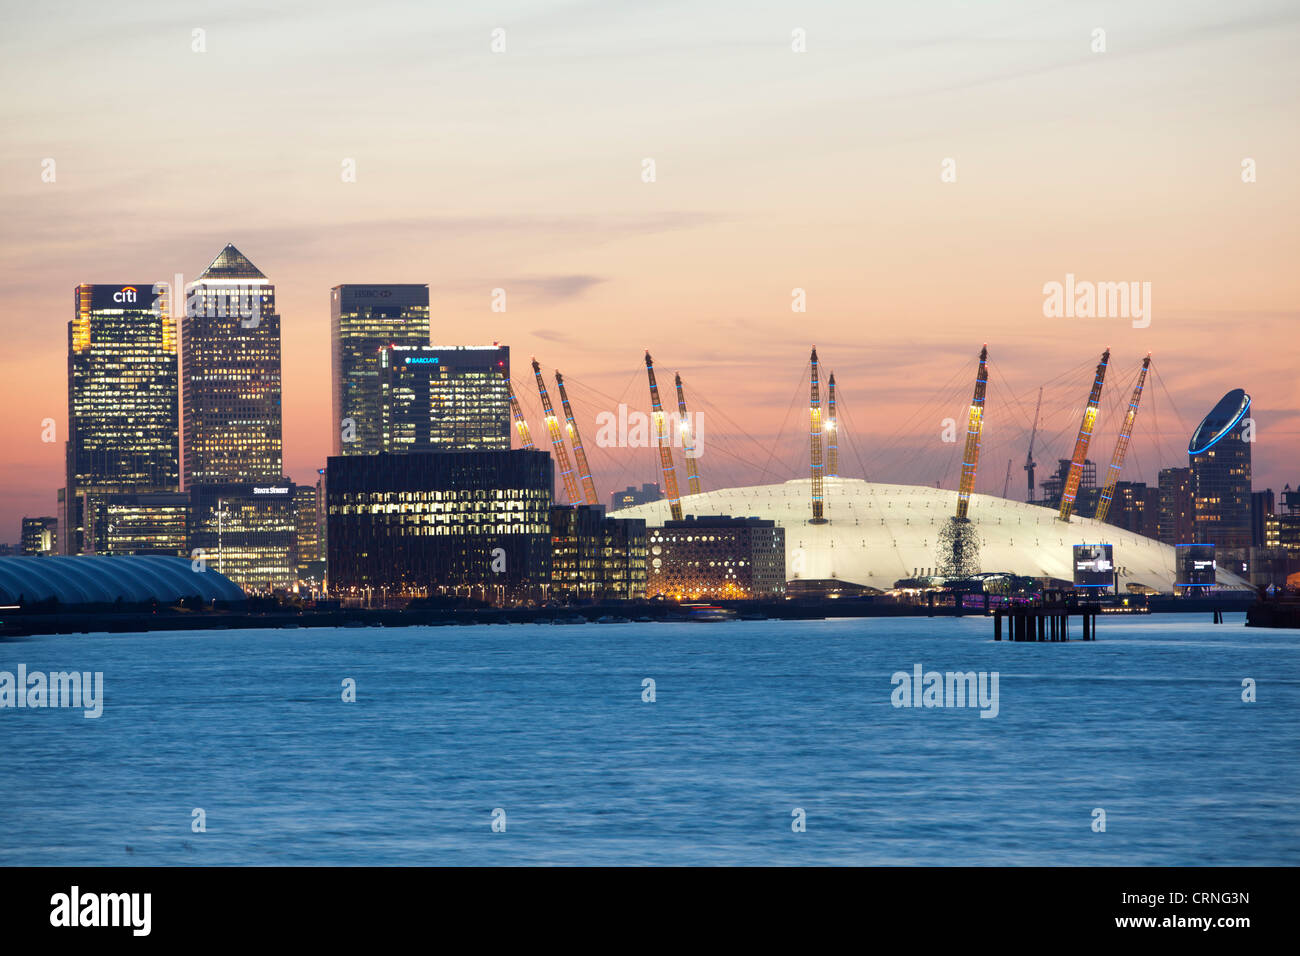 A view down the River Thames towards the O2 Arena and Canary Wharf at sunset. Stock Photo